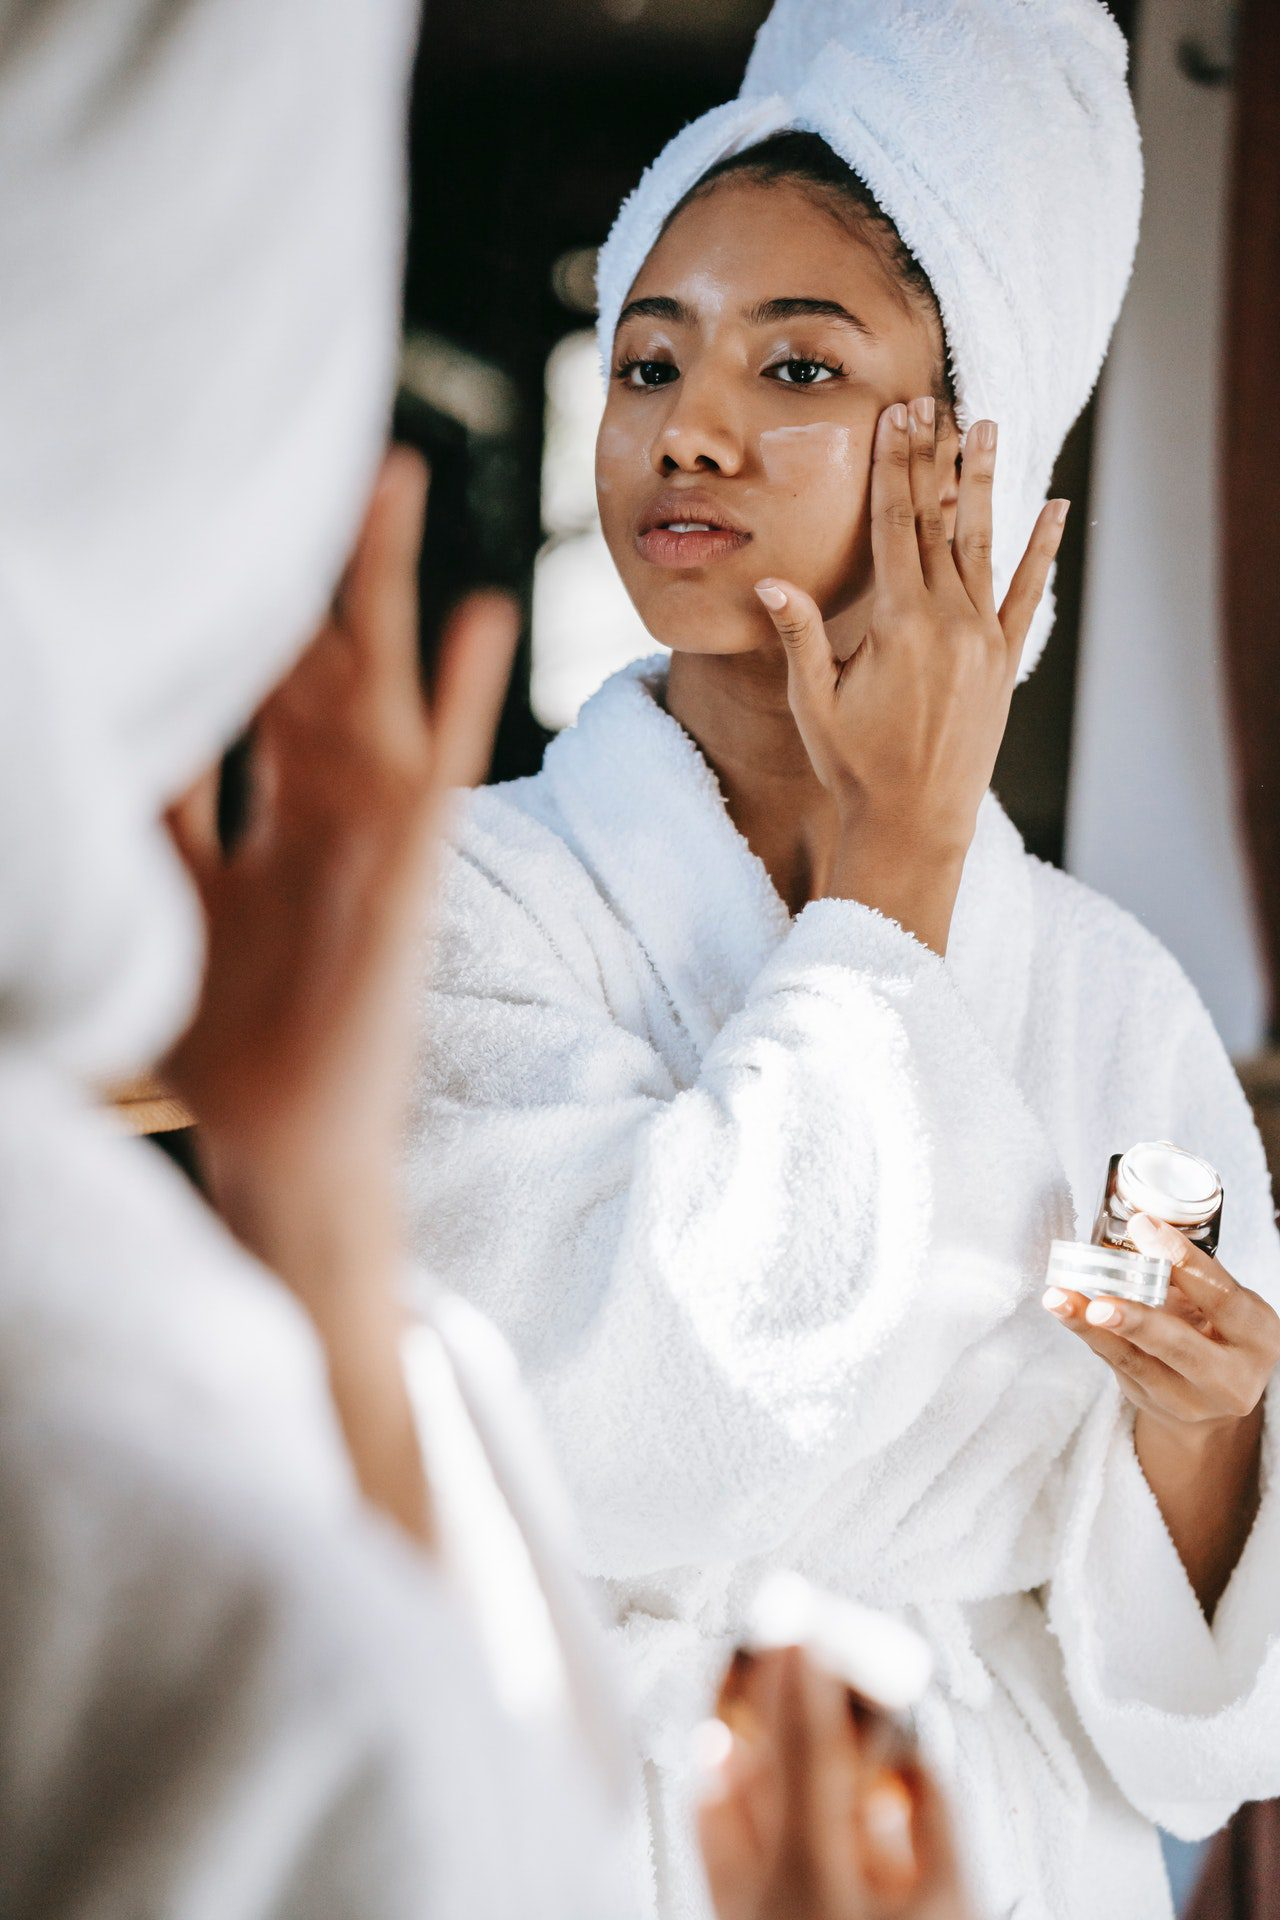 Affordable Skin Care That Will Help with Anti-Aging